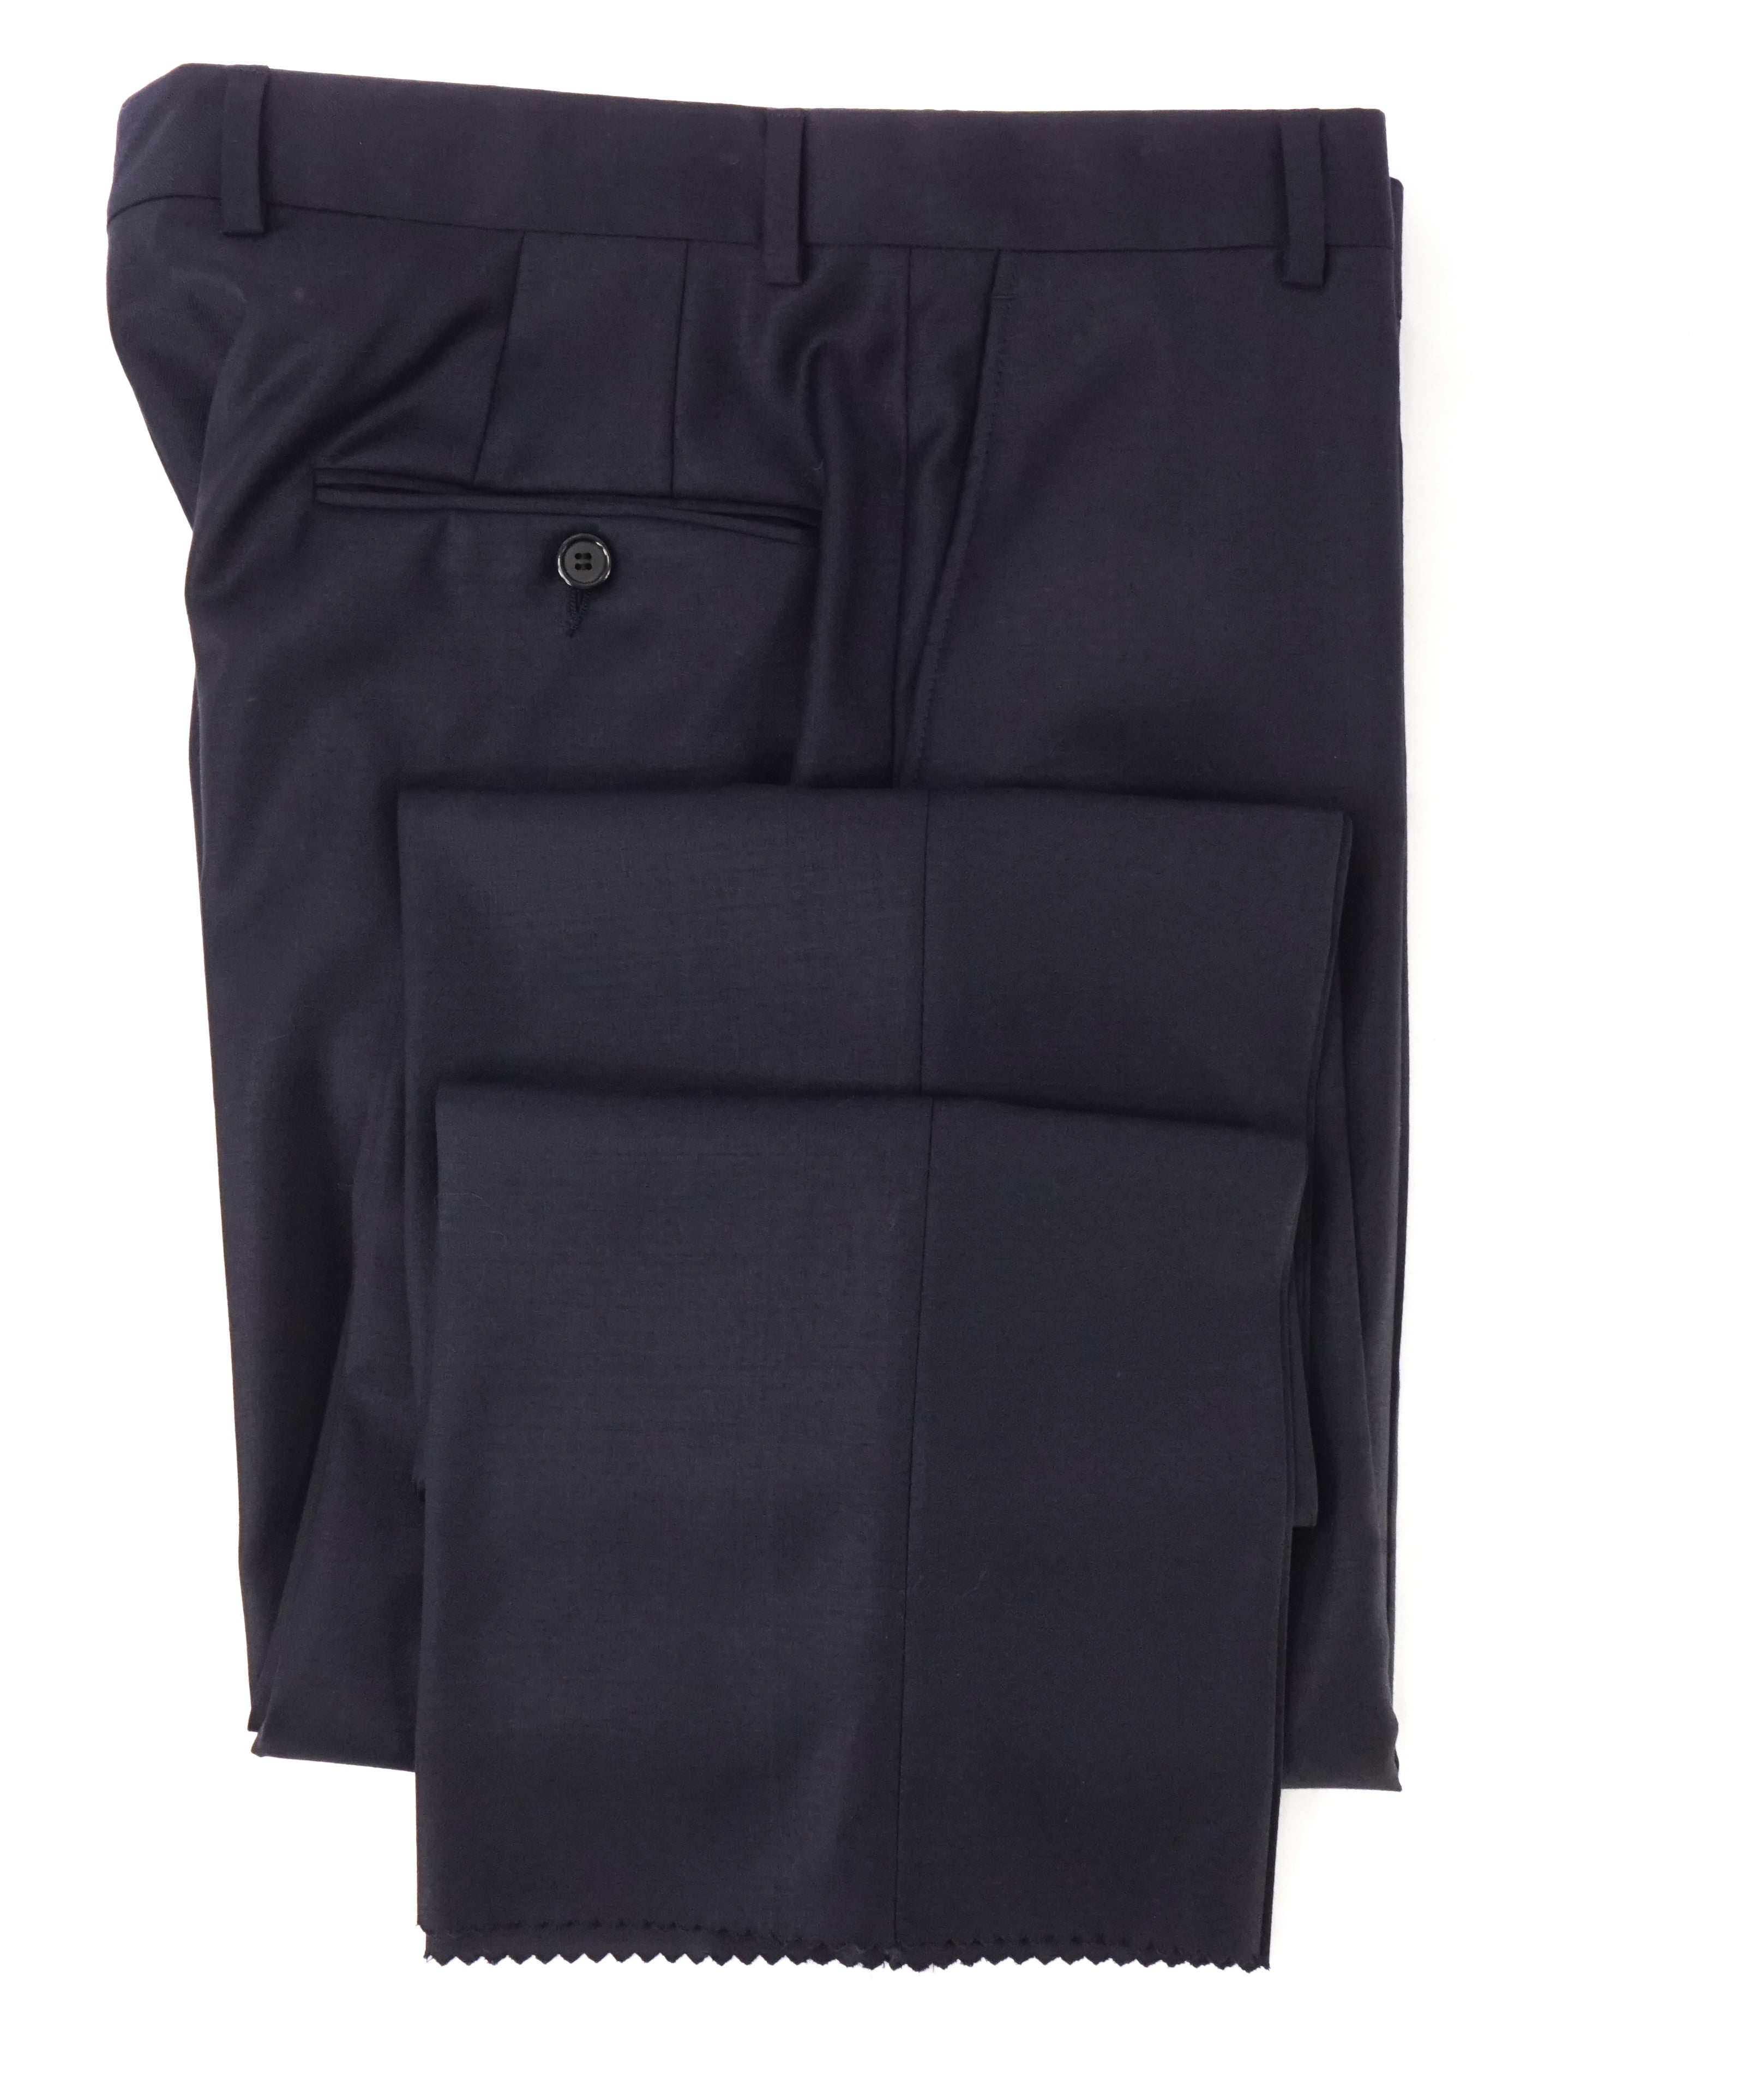 HICKEY FREEMAN -  Solid Navy Closet Staple Wool Flat Front Dress Pants - 32W